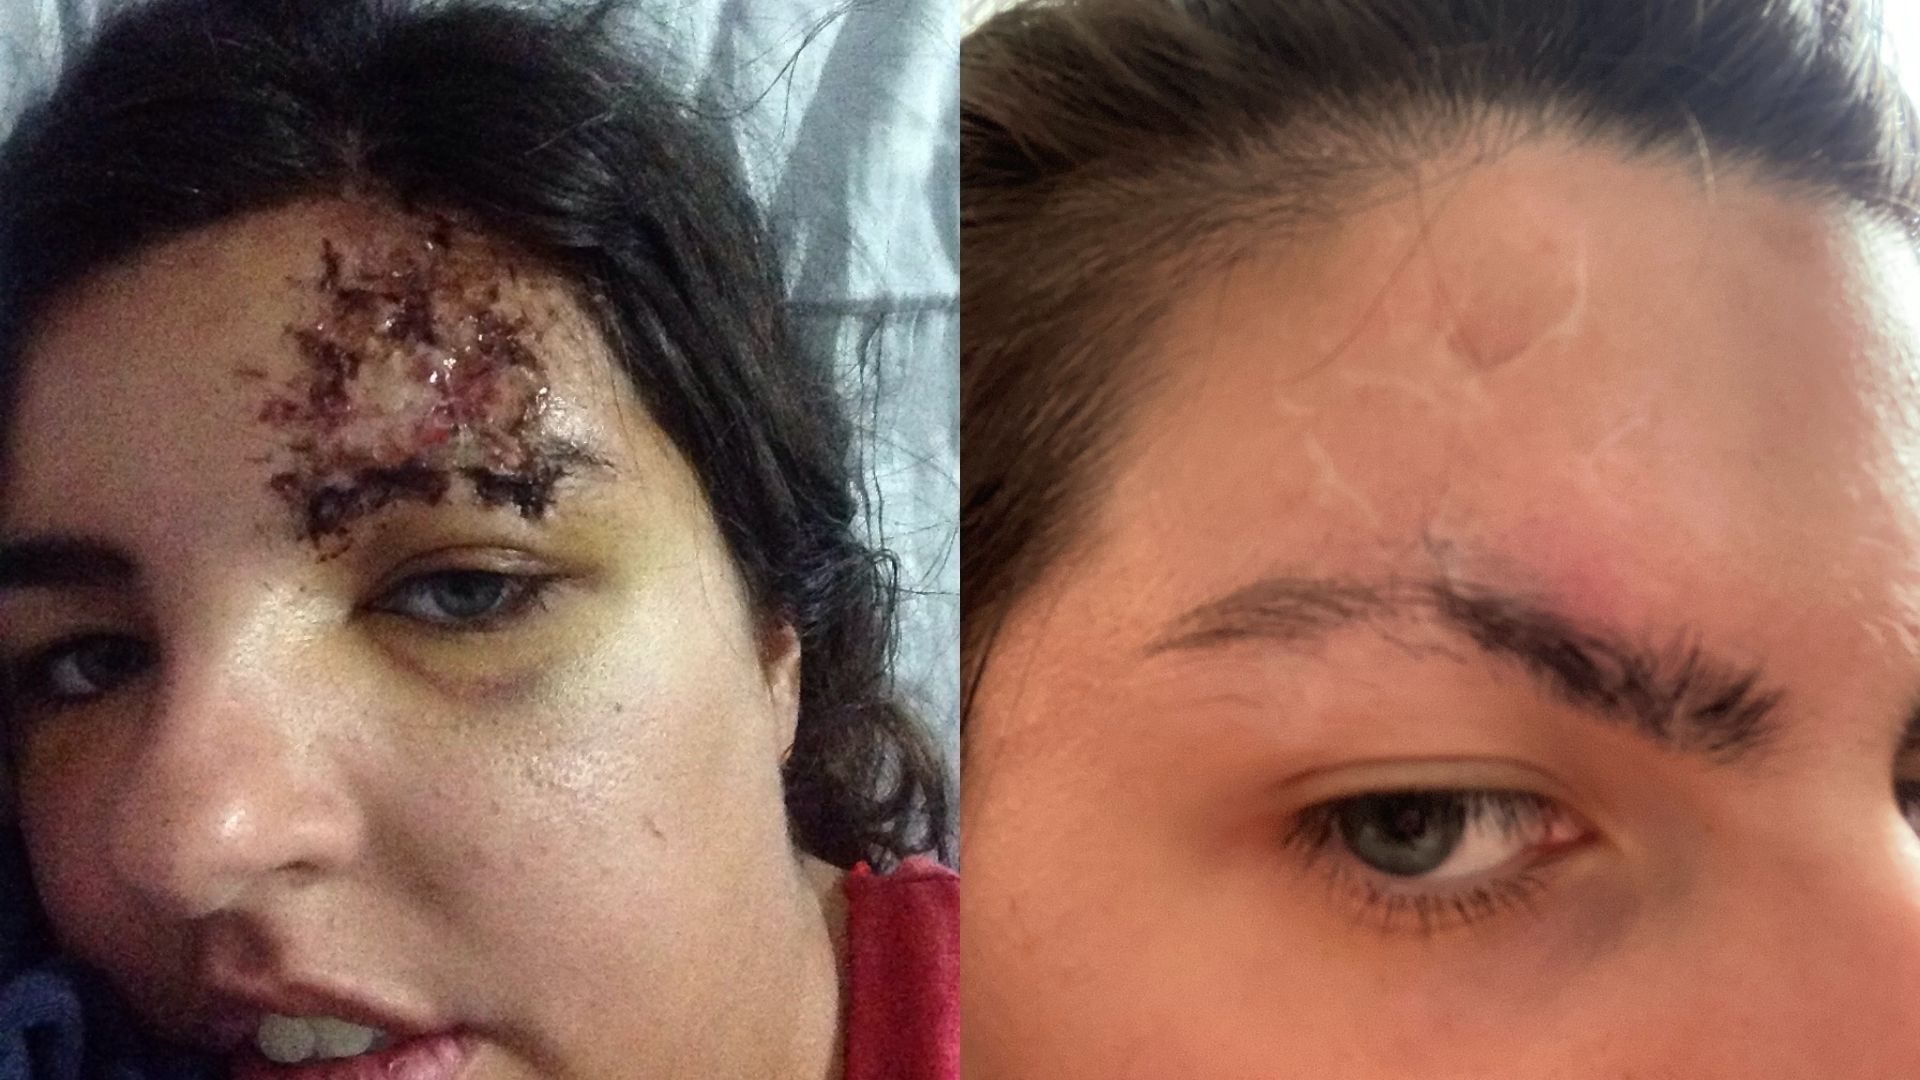 Left: a close-up of Sophie's forehead after the accident. An open wound is visible. Right: Sophie's forehead a few weeks later. It has healed and there are scars on her forehead and through her right eyebrow.